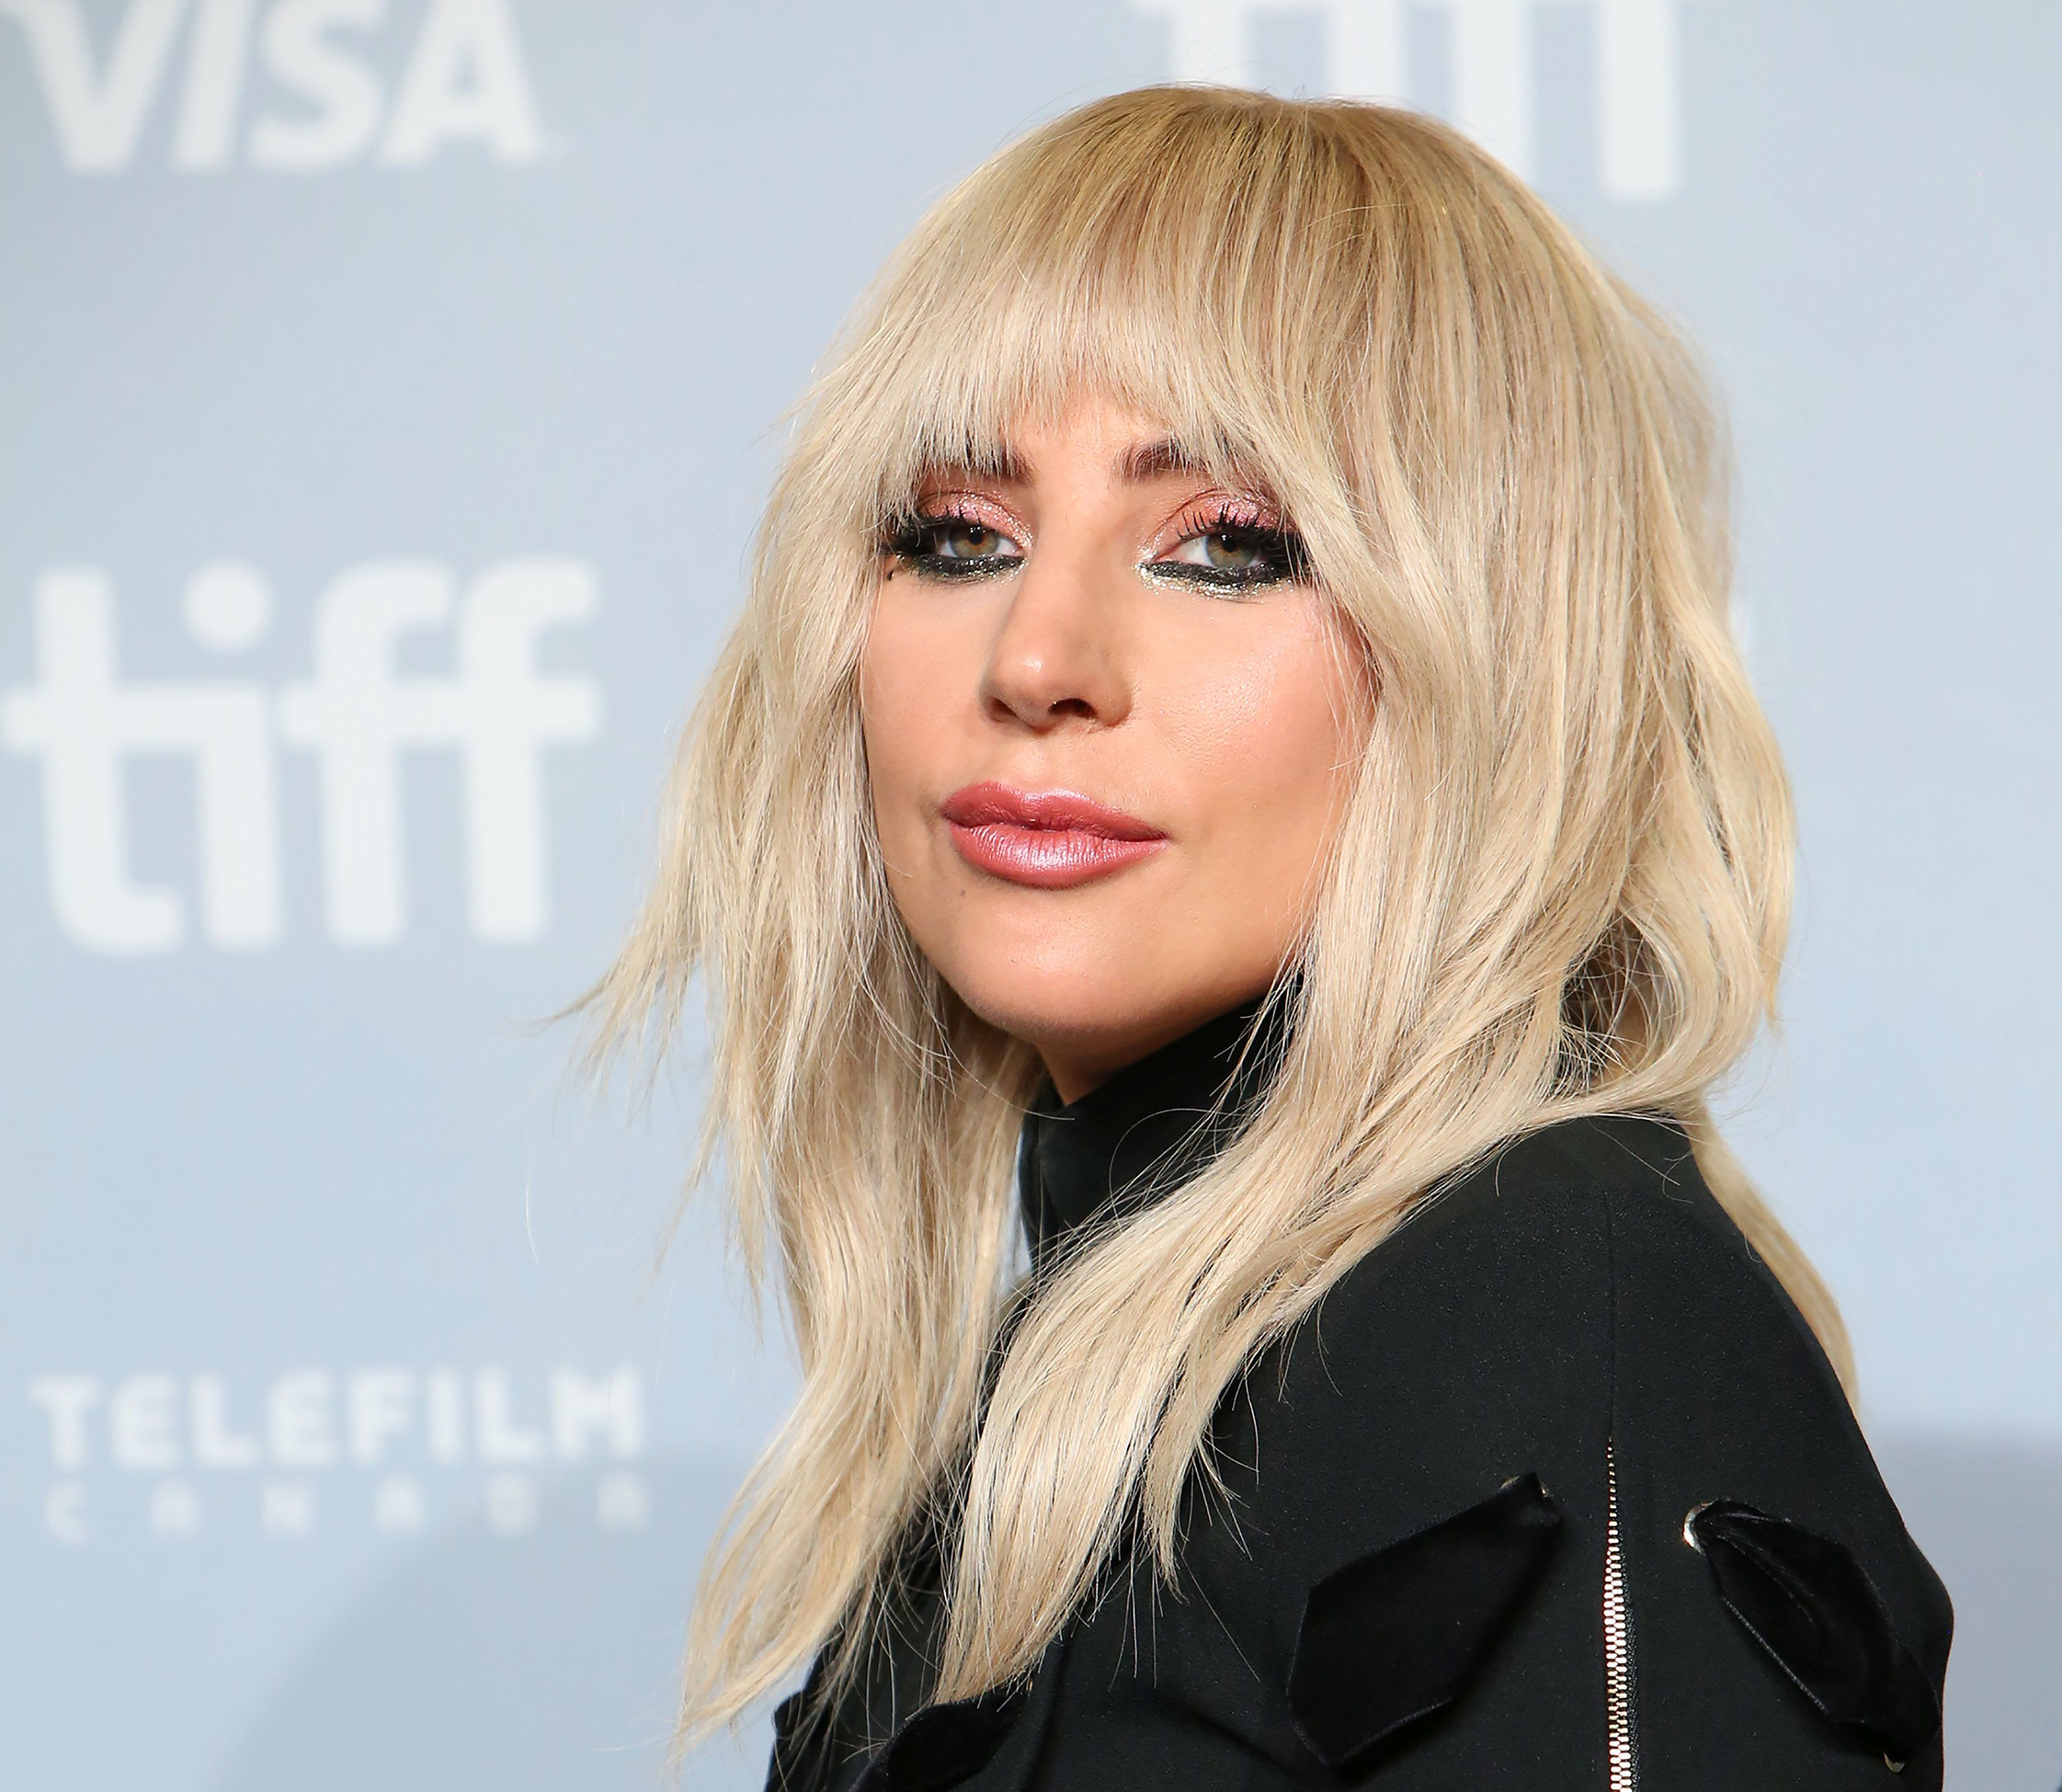 Lady Gaga cancels Rio gig due to